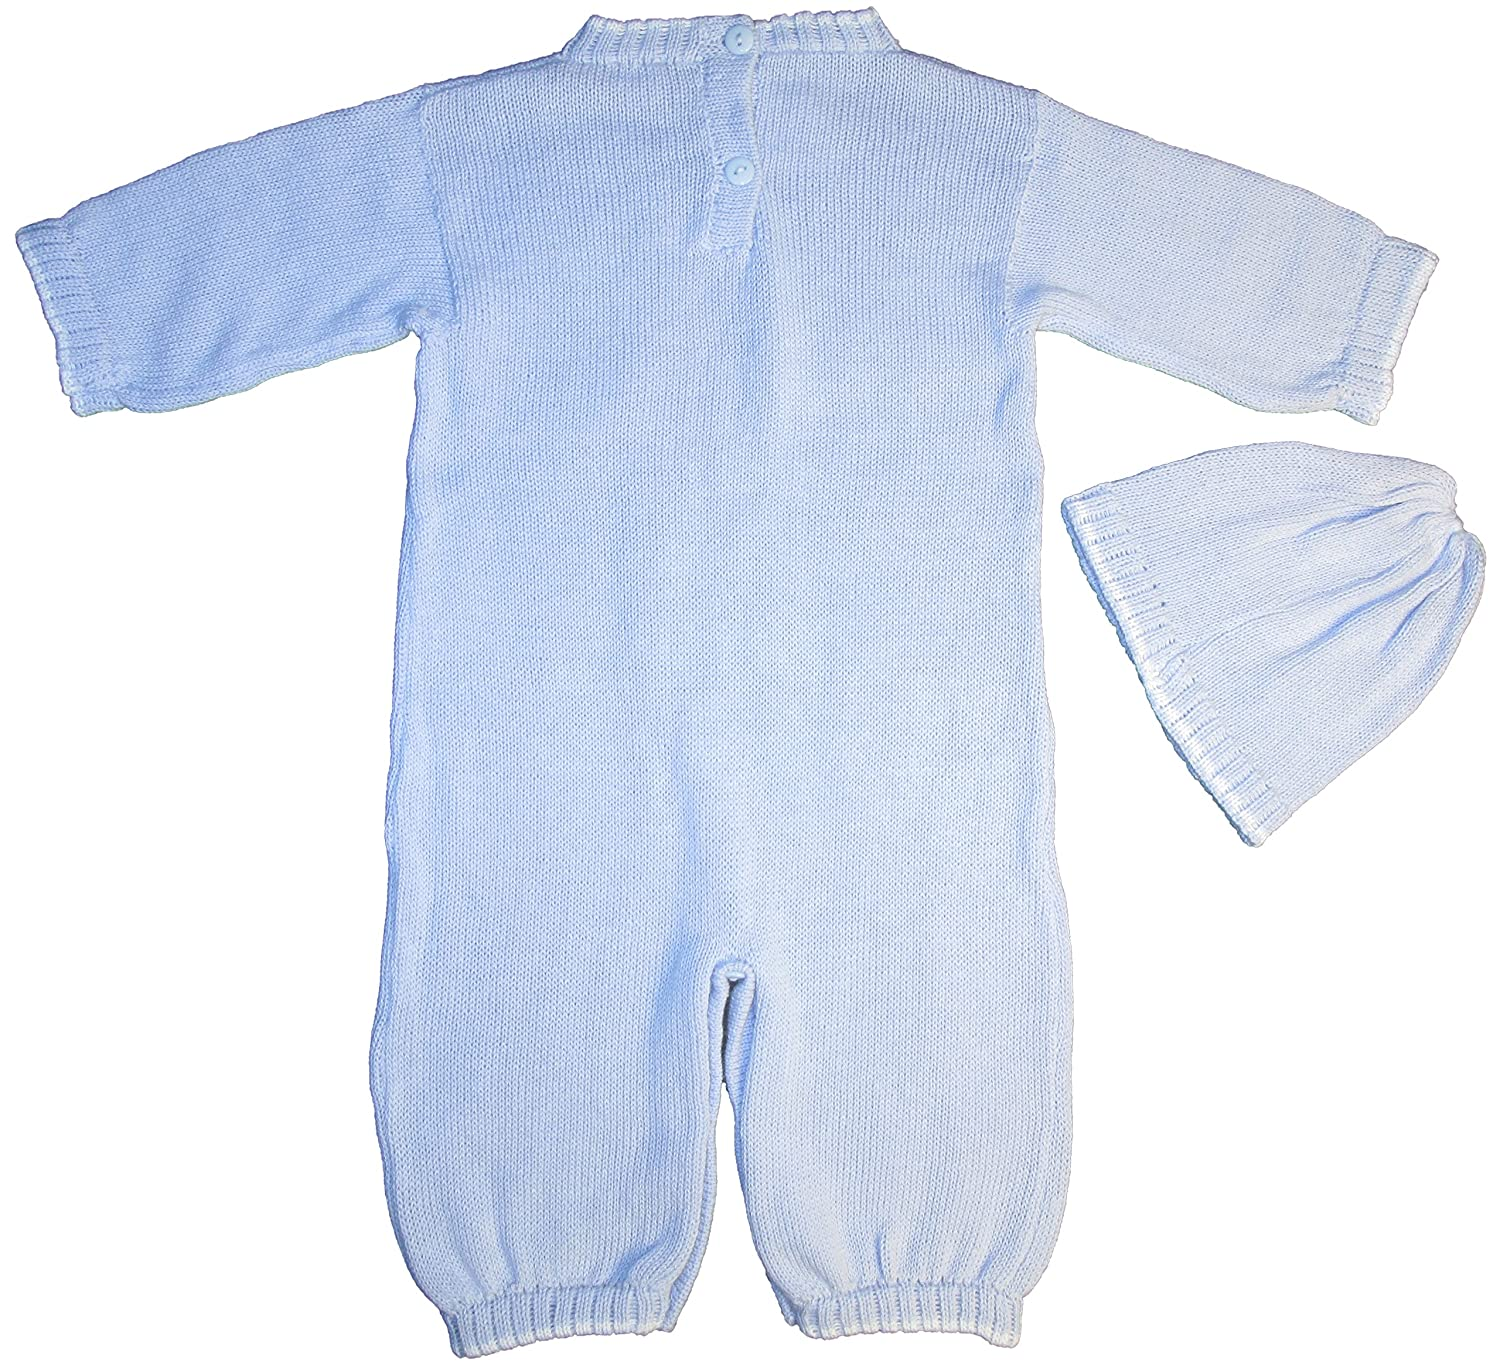 c8b6311dd Amazon.com: 100% Cotton Baby Blue Boys 2 Piece Cable-Knit Longall with Cap  Gift Set: Clothing